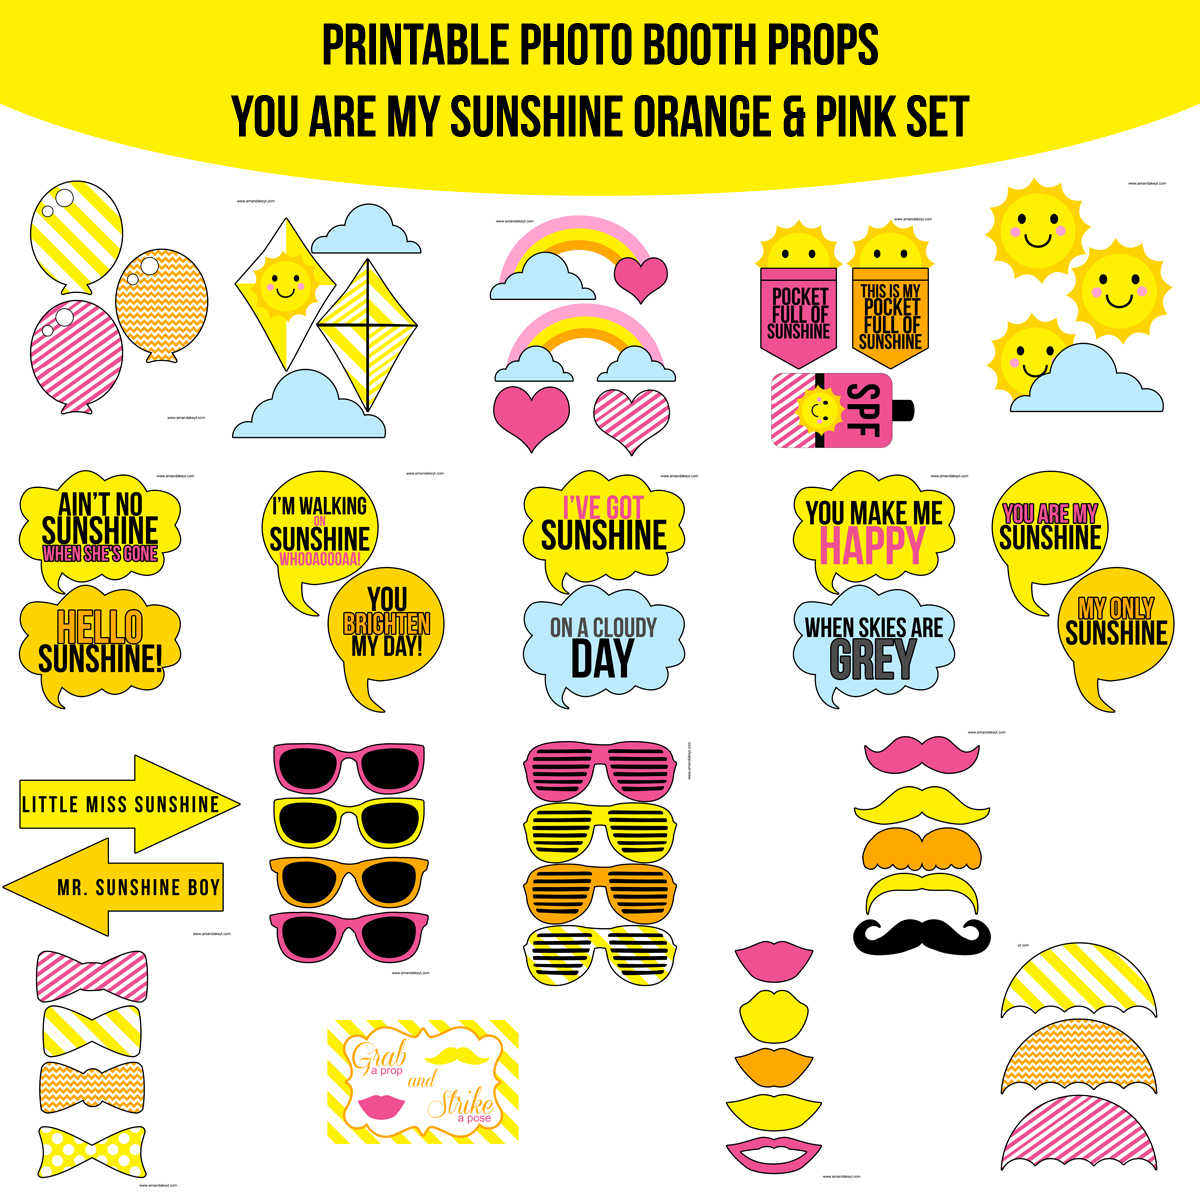 See the Set - To View The Whole Orange You Are My Sunshine Printable Photo Booth Prop Set Click Here